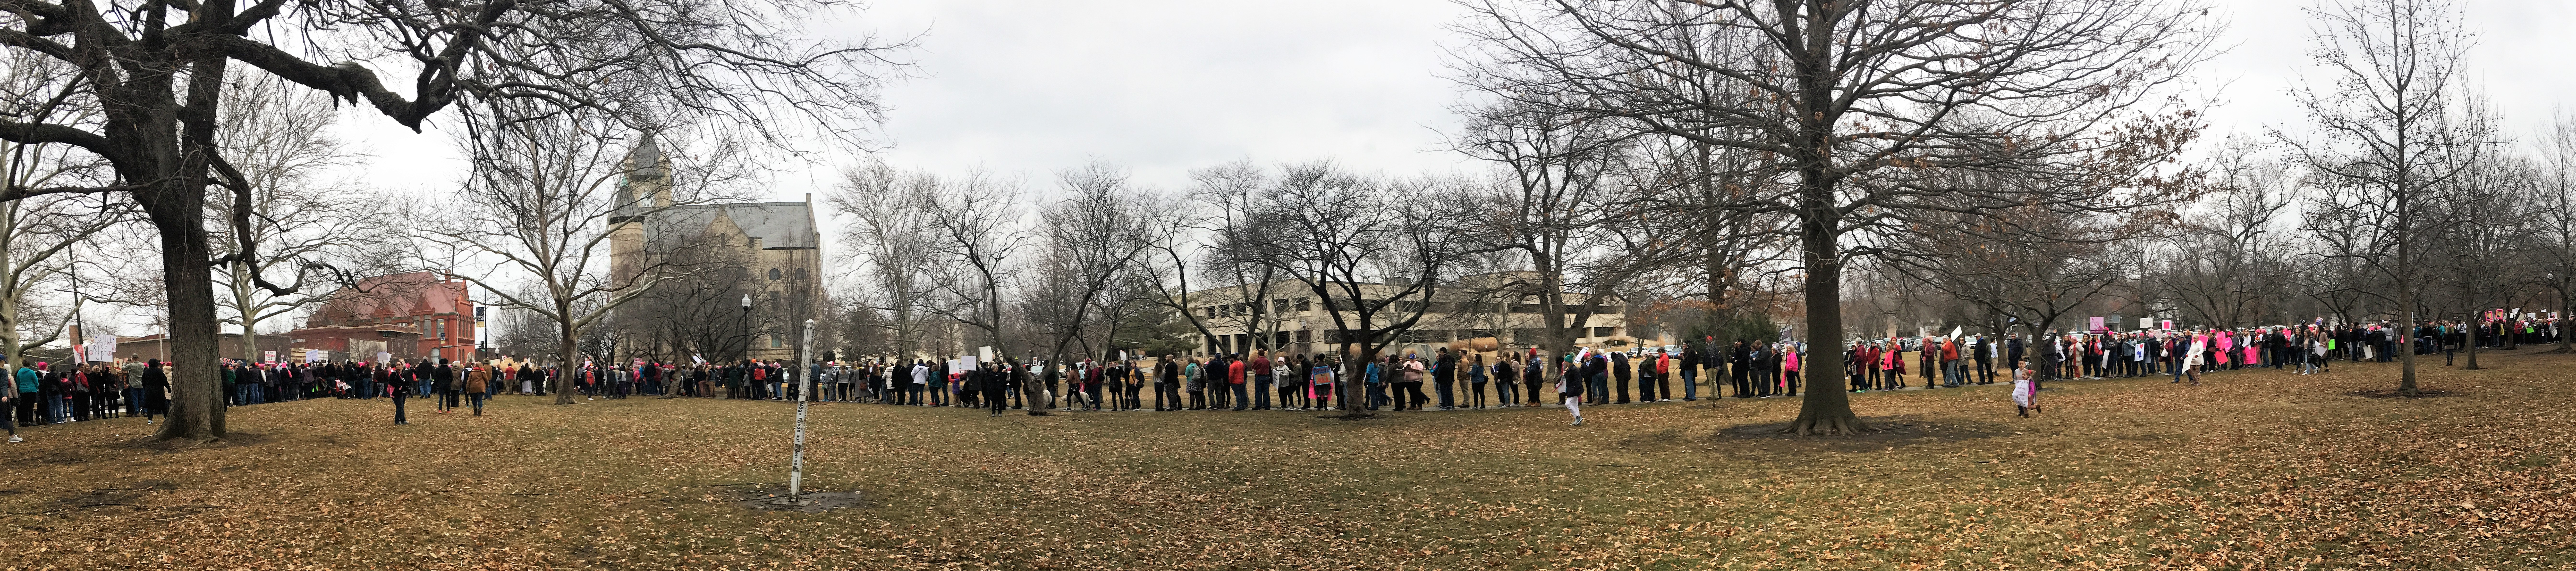 Women's March 2018 - Lawrence, KS